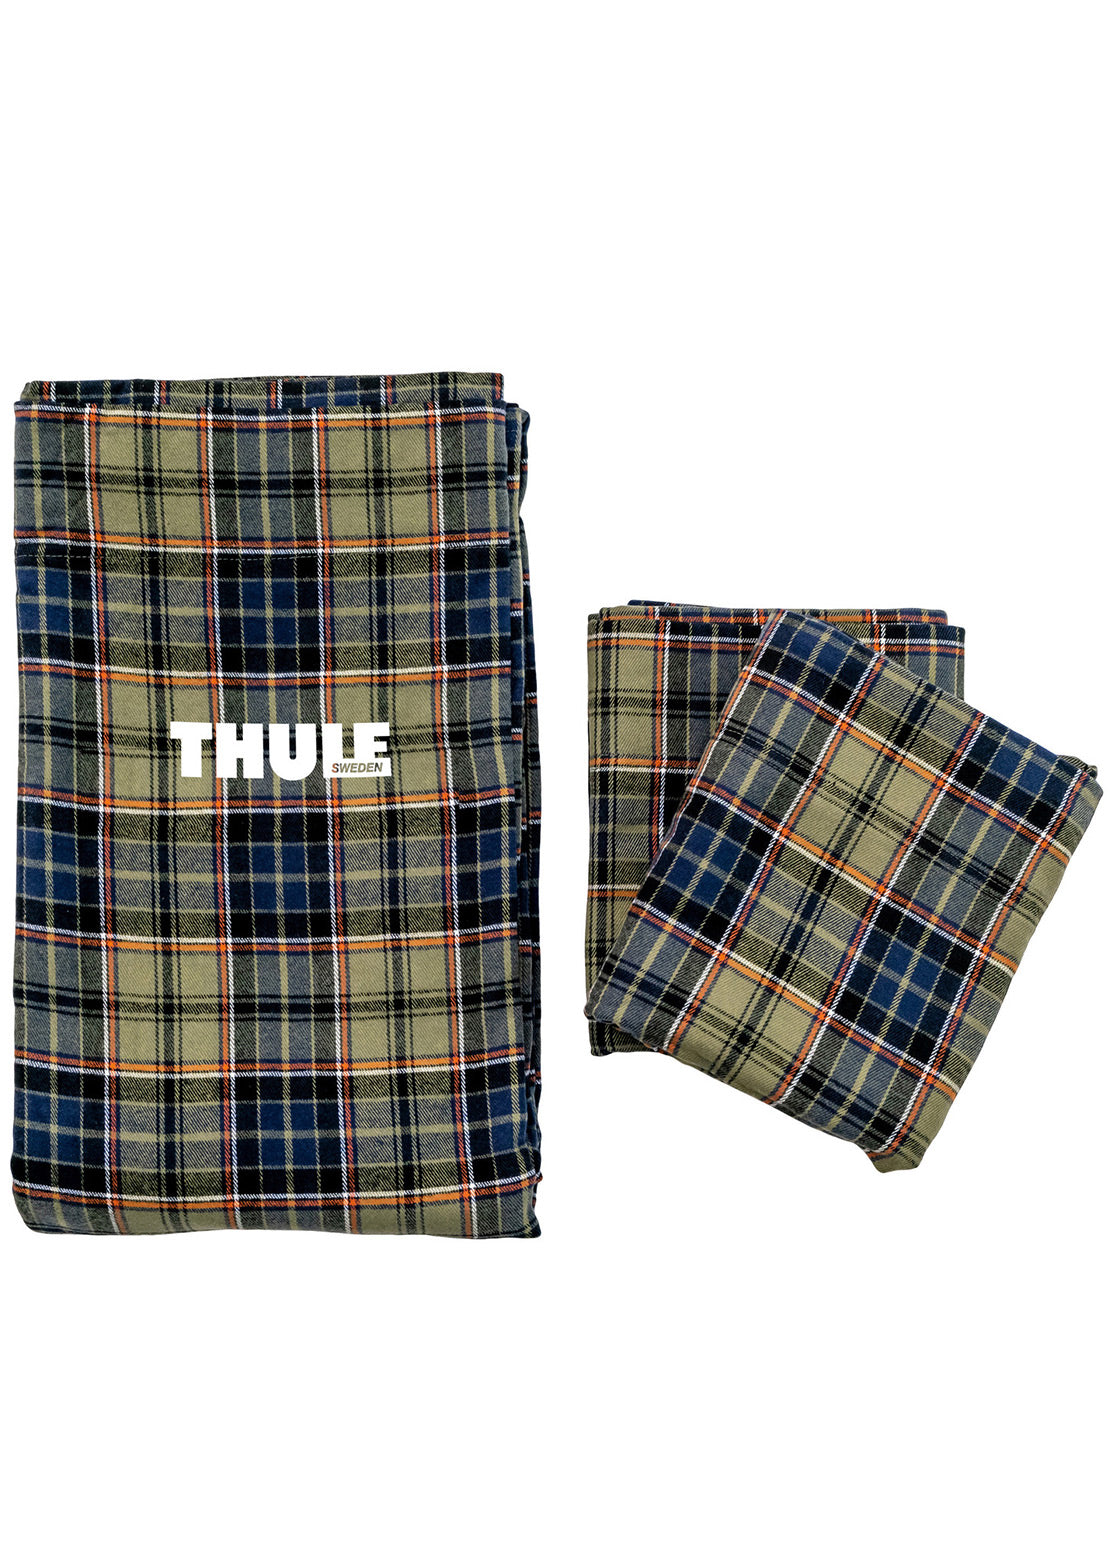 Thule Flannel Sheets for 2-Person Tents Plaid Blue-Green